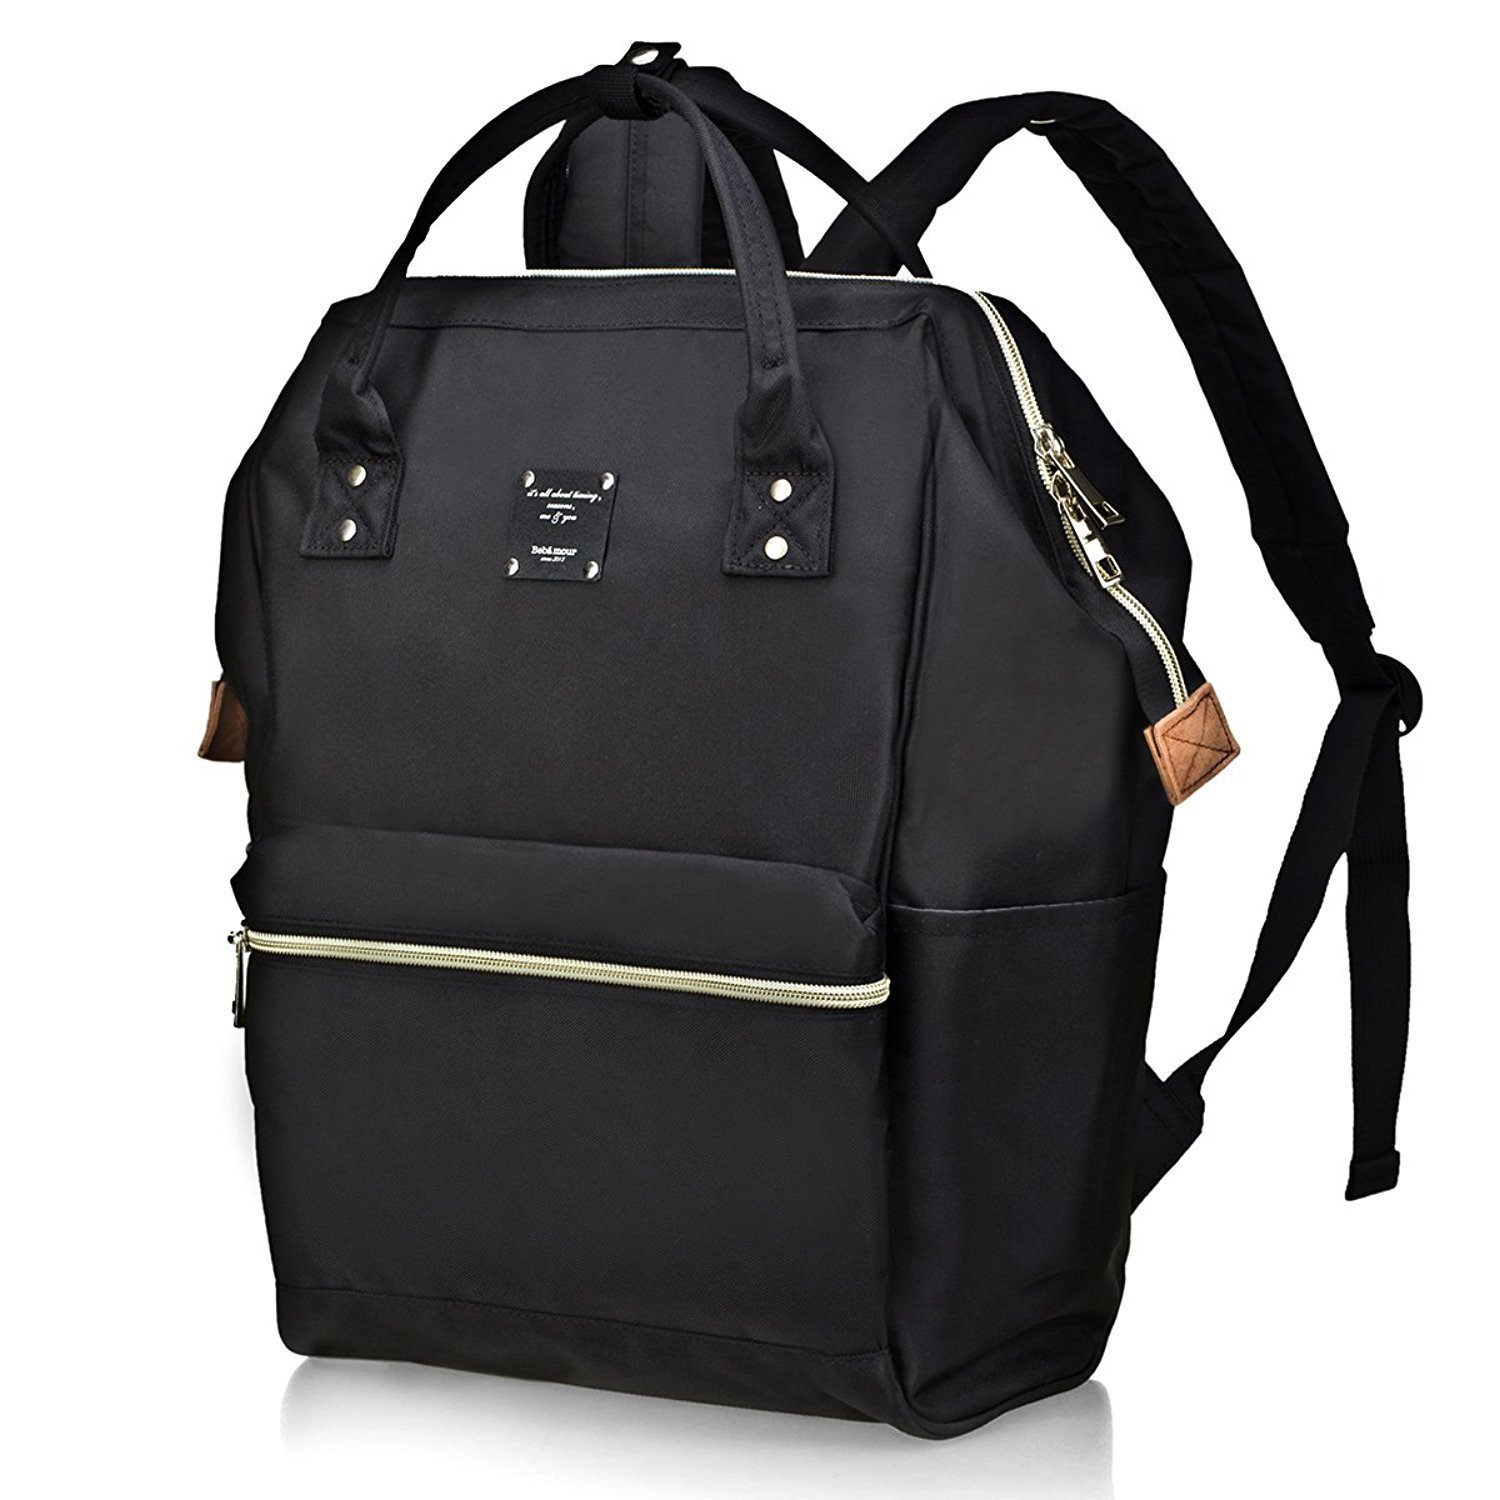 choose authentic special price for many styles Details about Bebamour Backpack Laptop Travel Bookbag School Bag Doctor  Style Casual Black